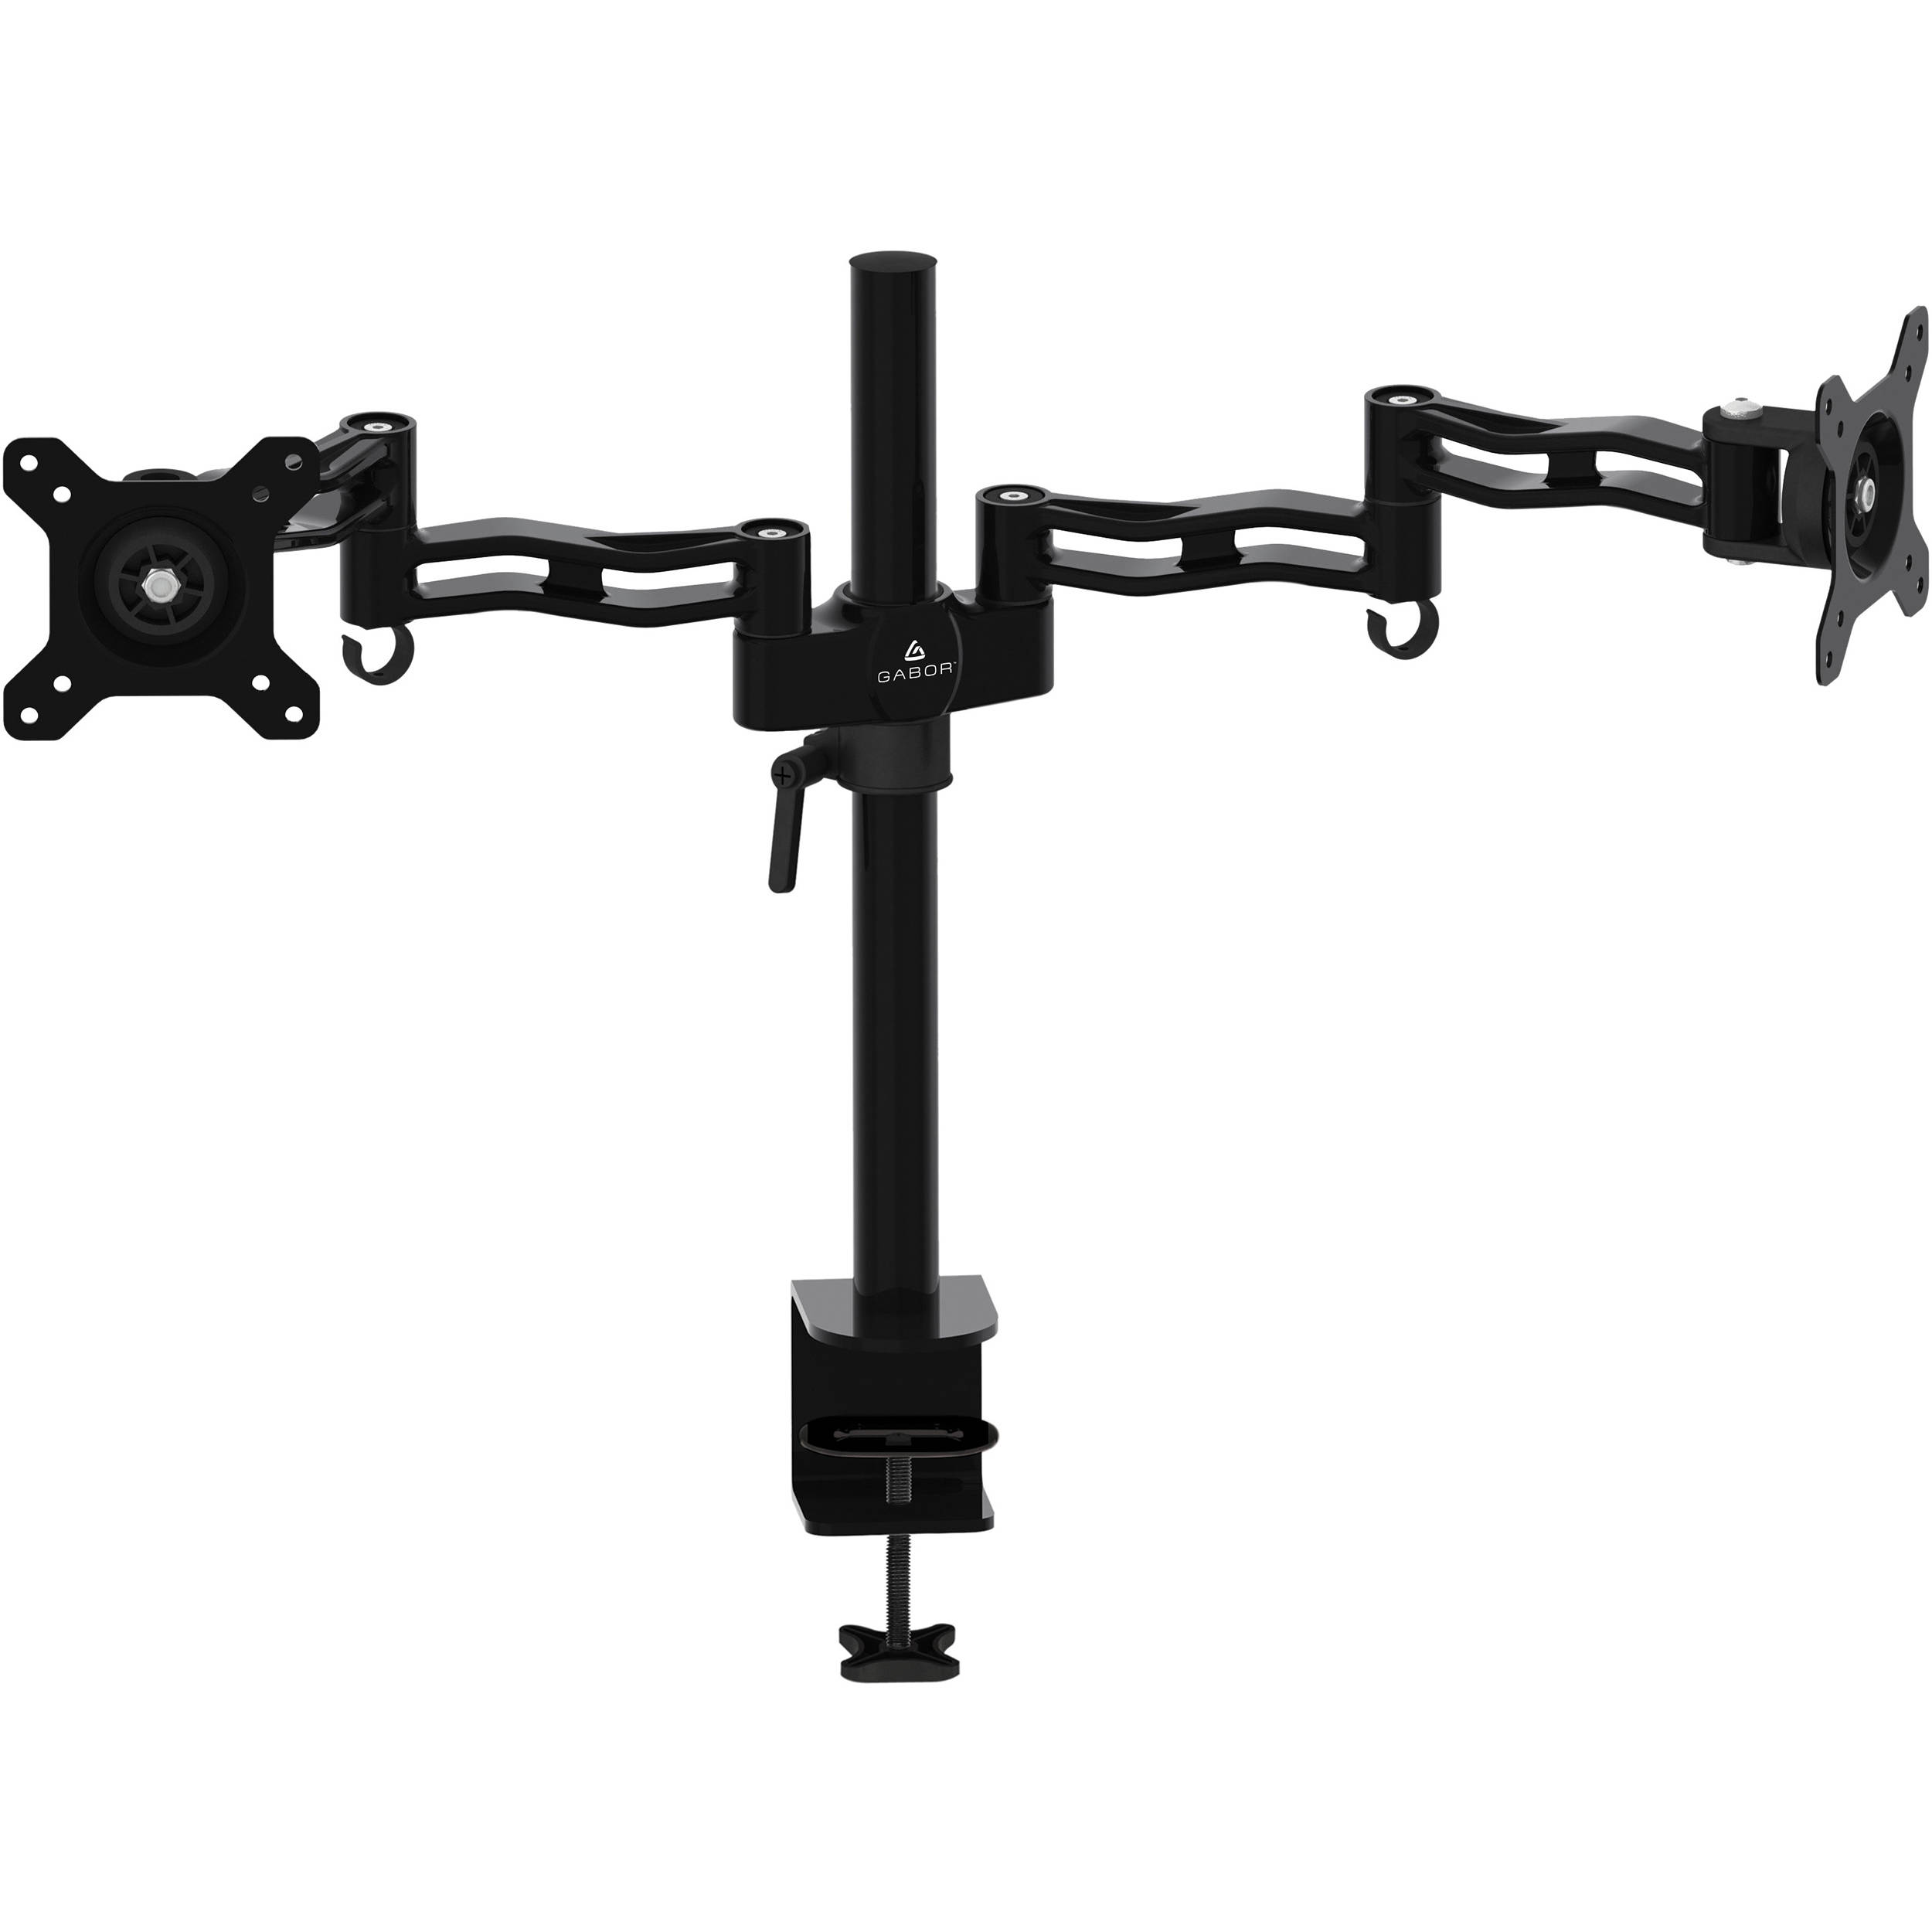 Gabor Md Bd13b Dual Monitor Desktop Mount With Articulating Arms Black